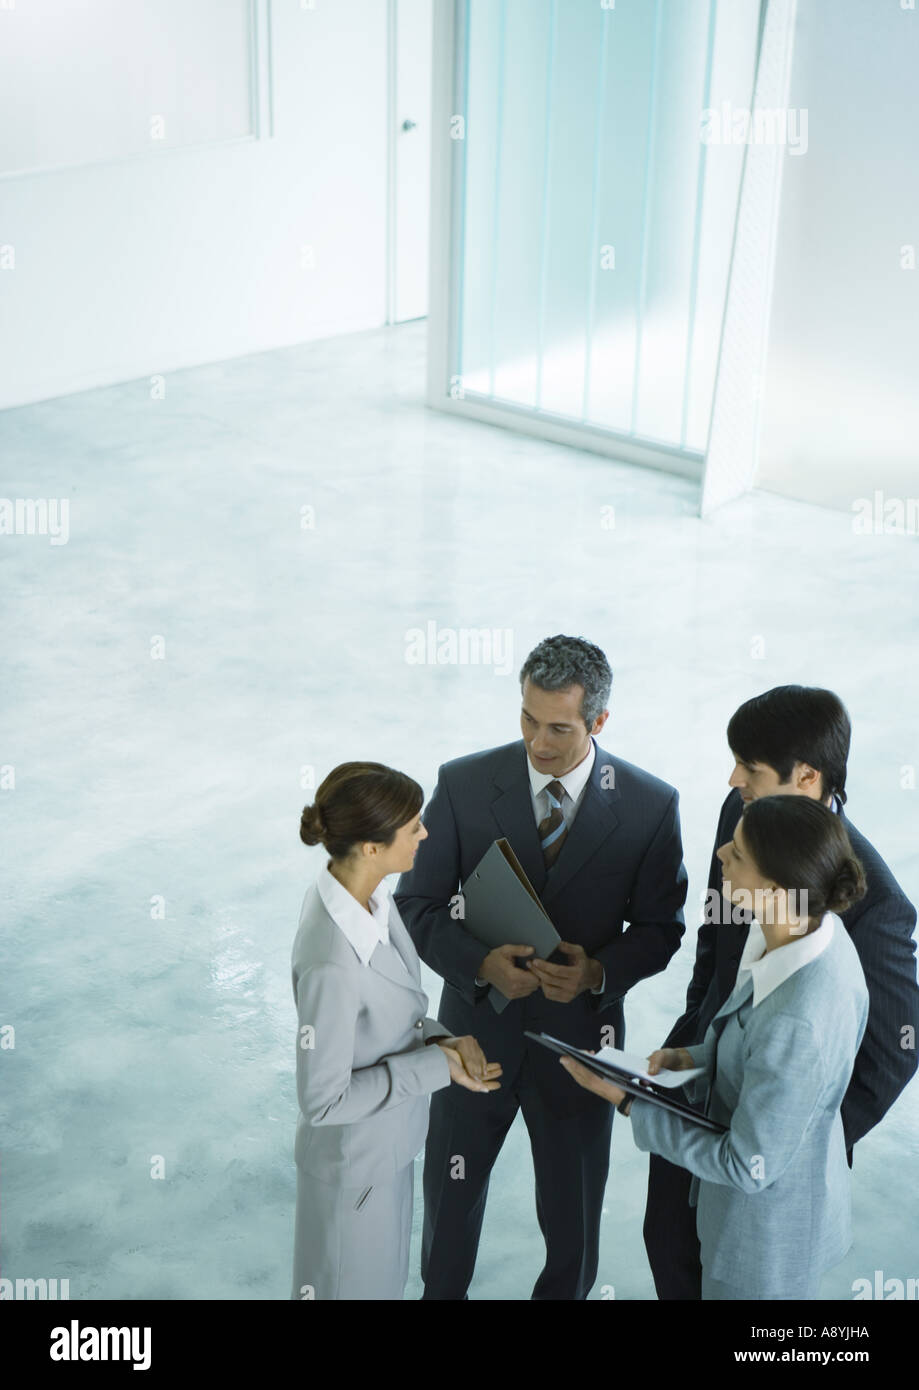 Four business associates talking together in lobby - Stock Image